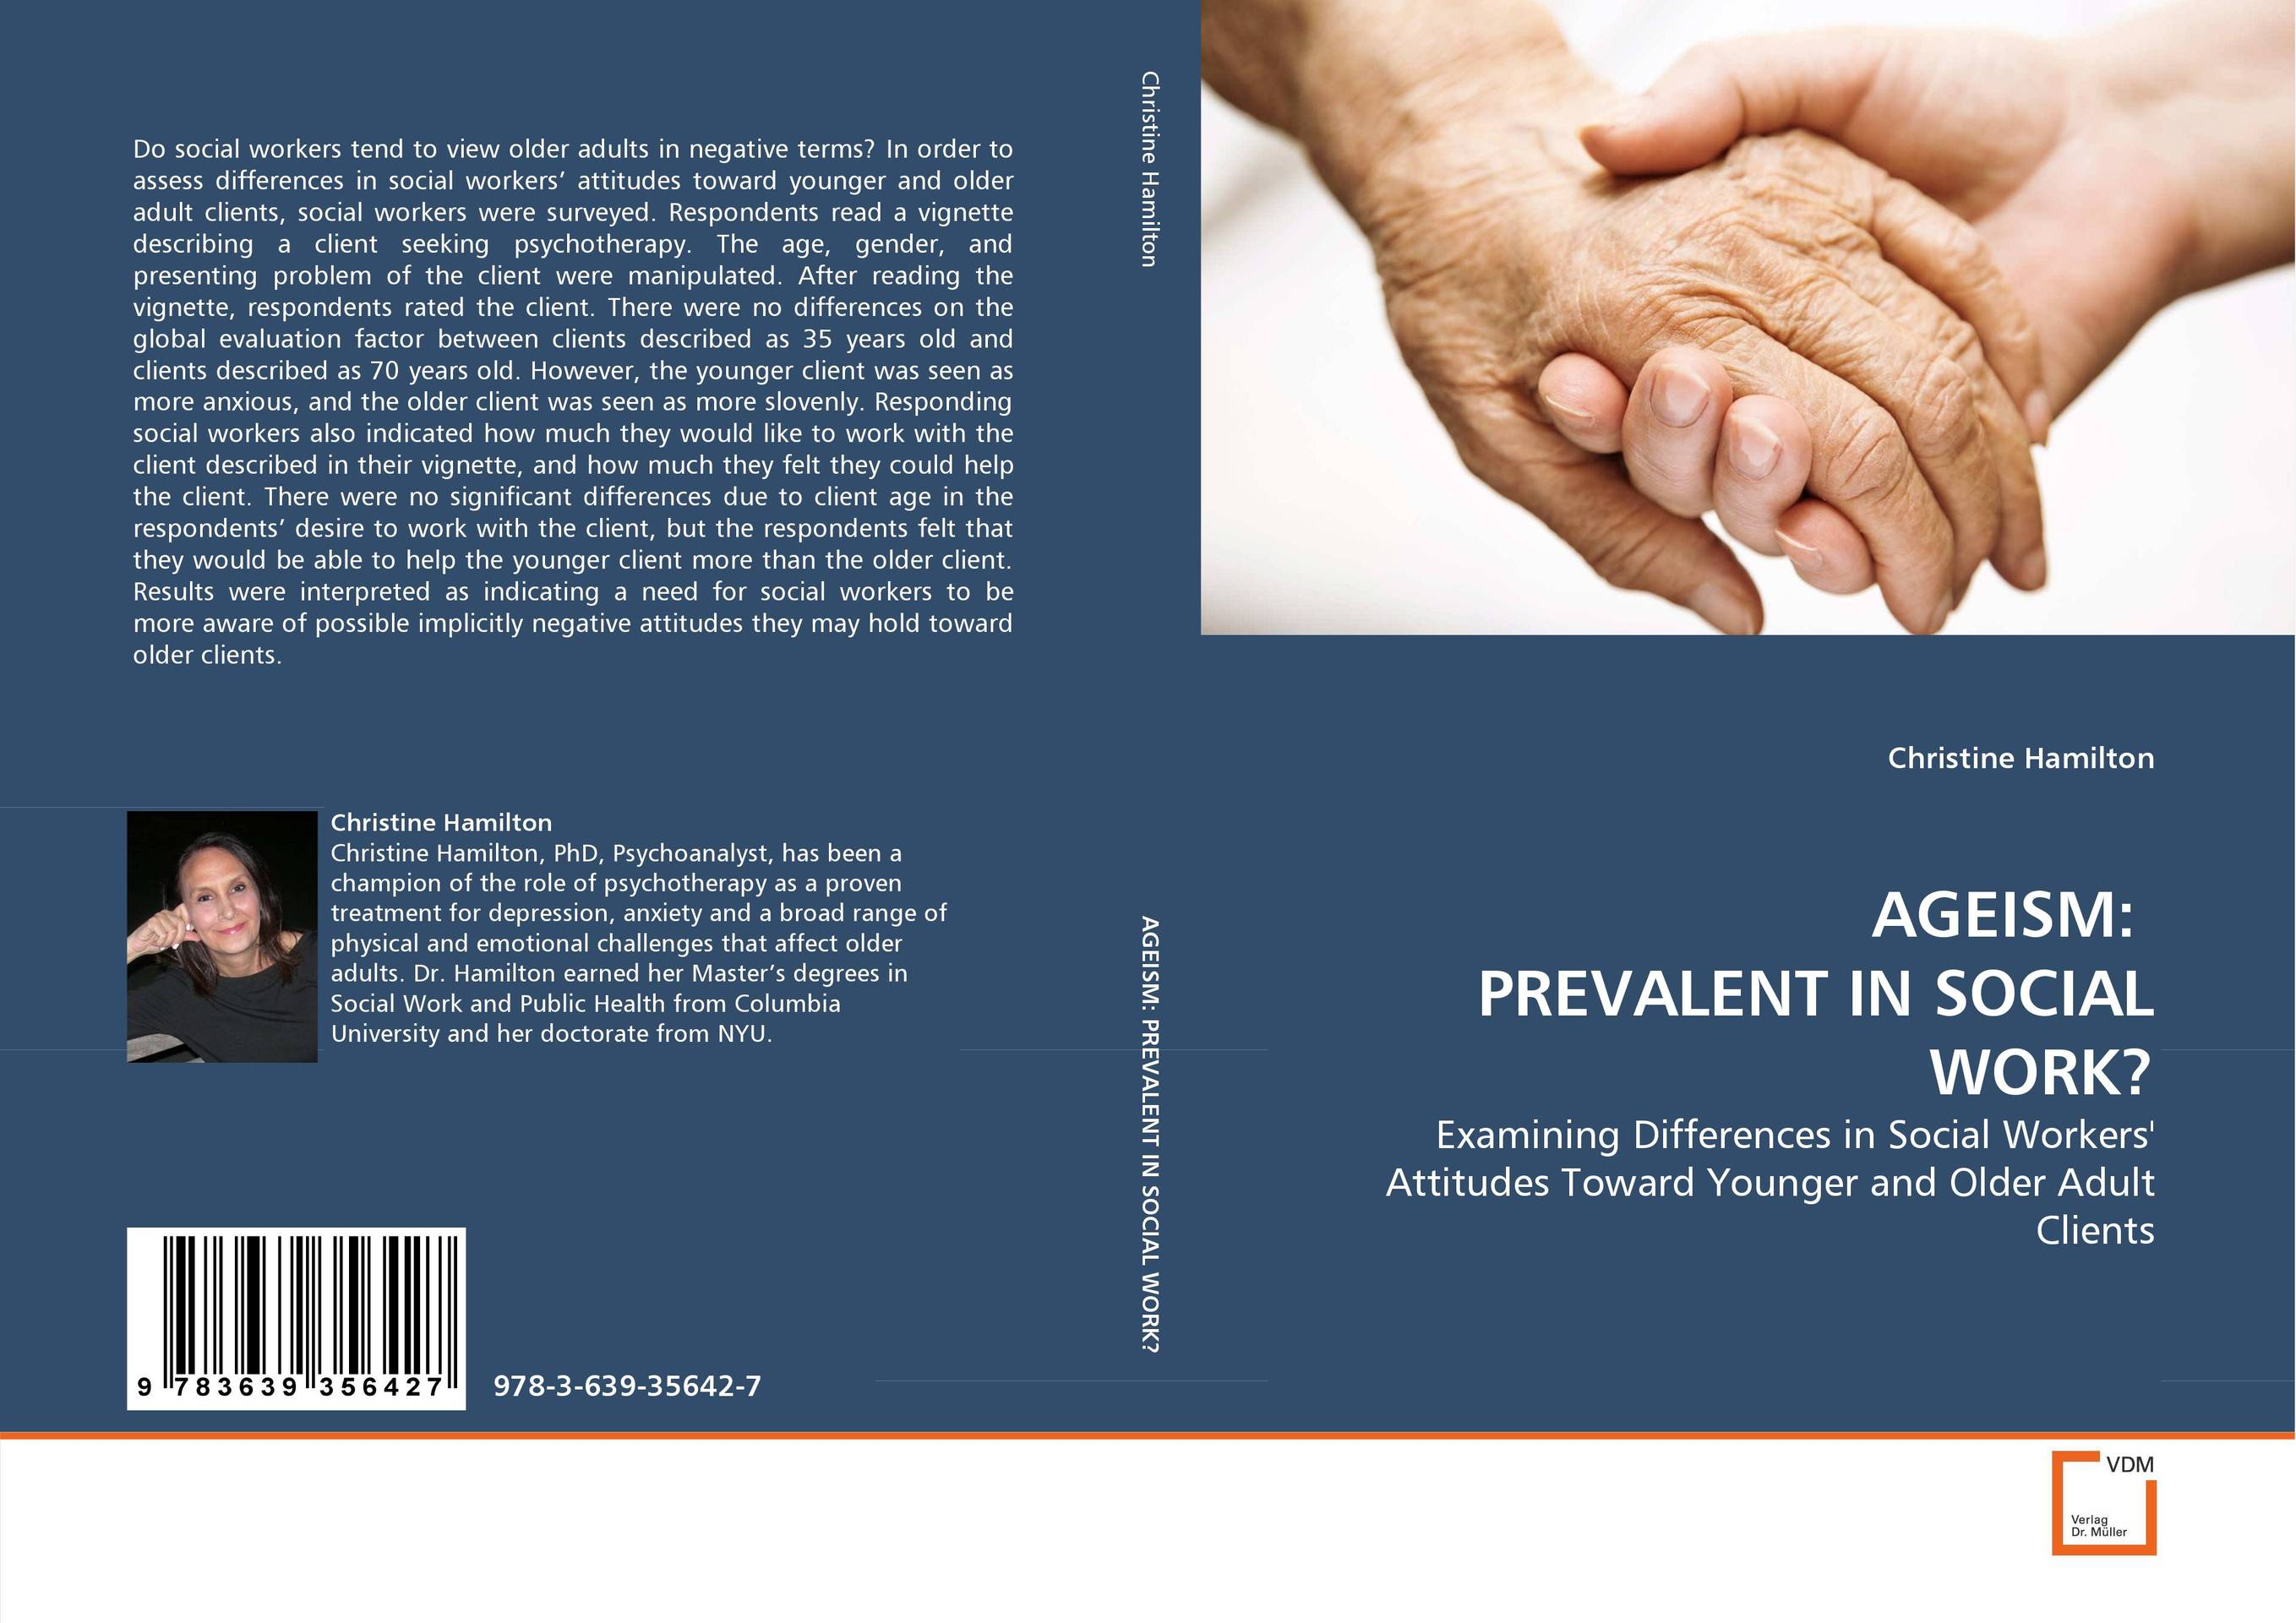 an analysis of the young and older people in canada Currently, canada is fortunate to have a relatively young population compared to robust, around-the-clock services for frail and elderly canadians living in detailed analysis of seniors strategies in place across canada a.